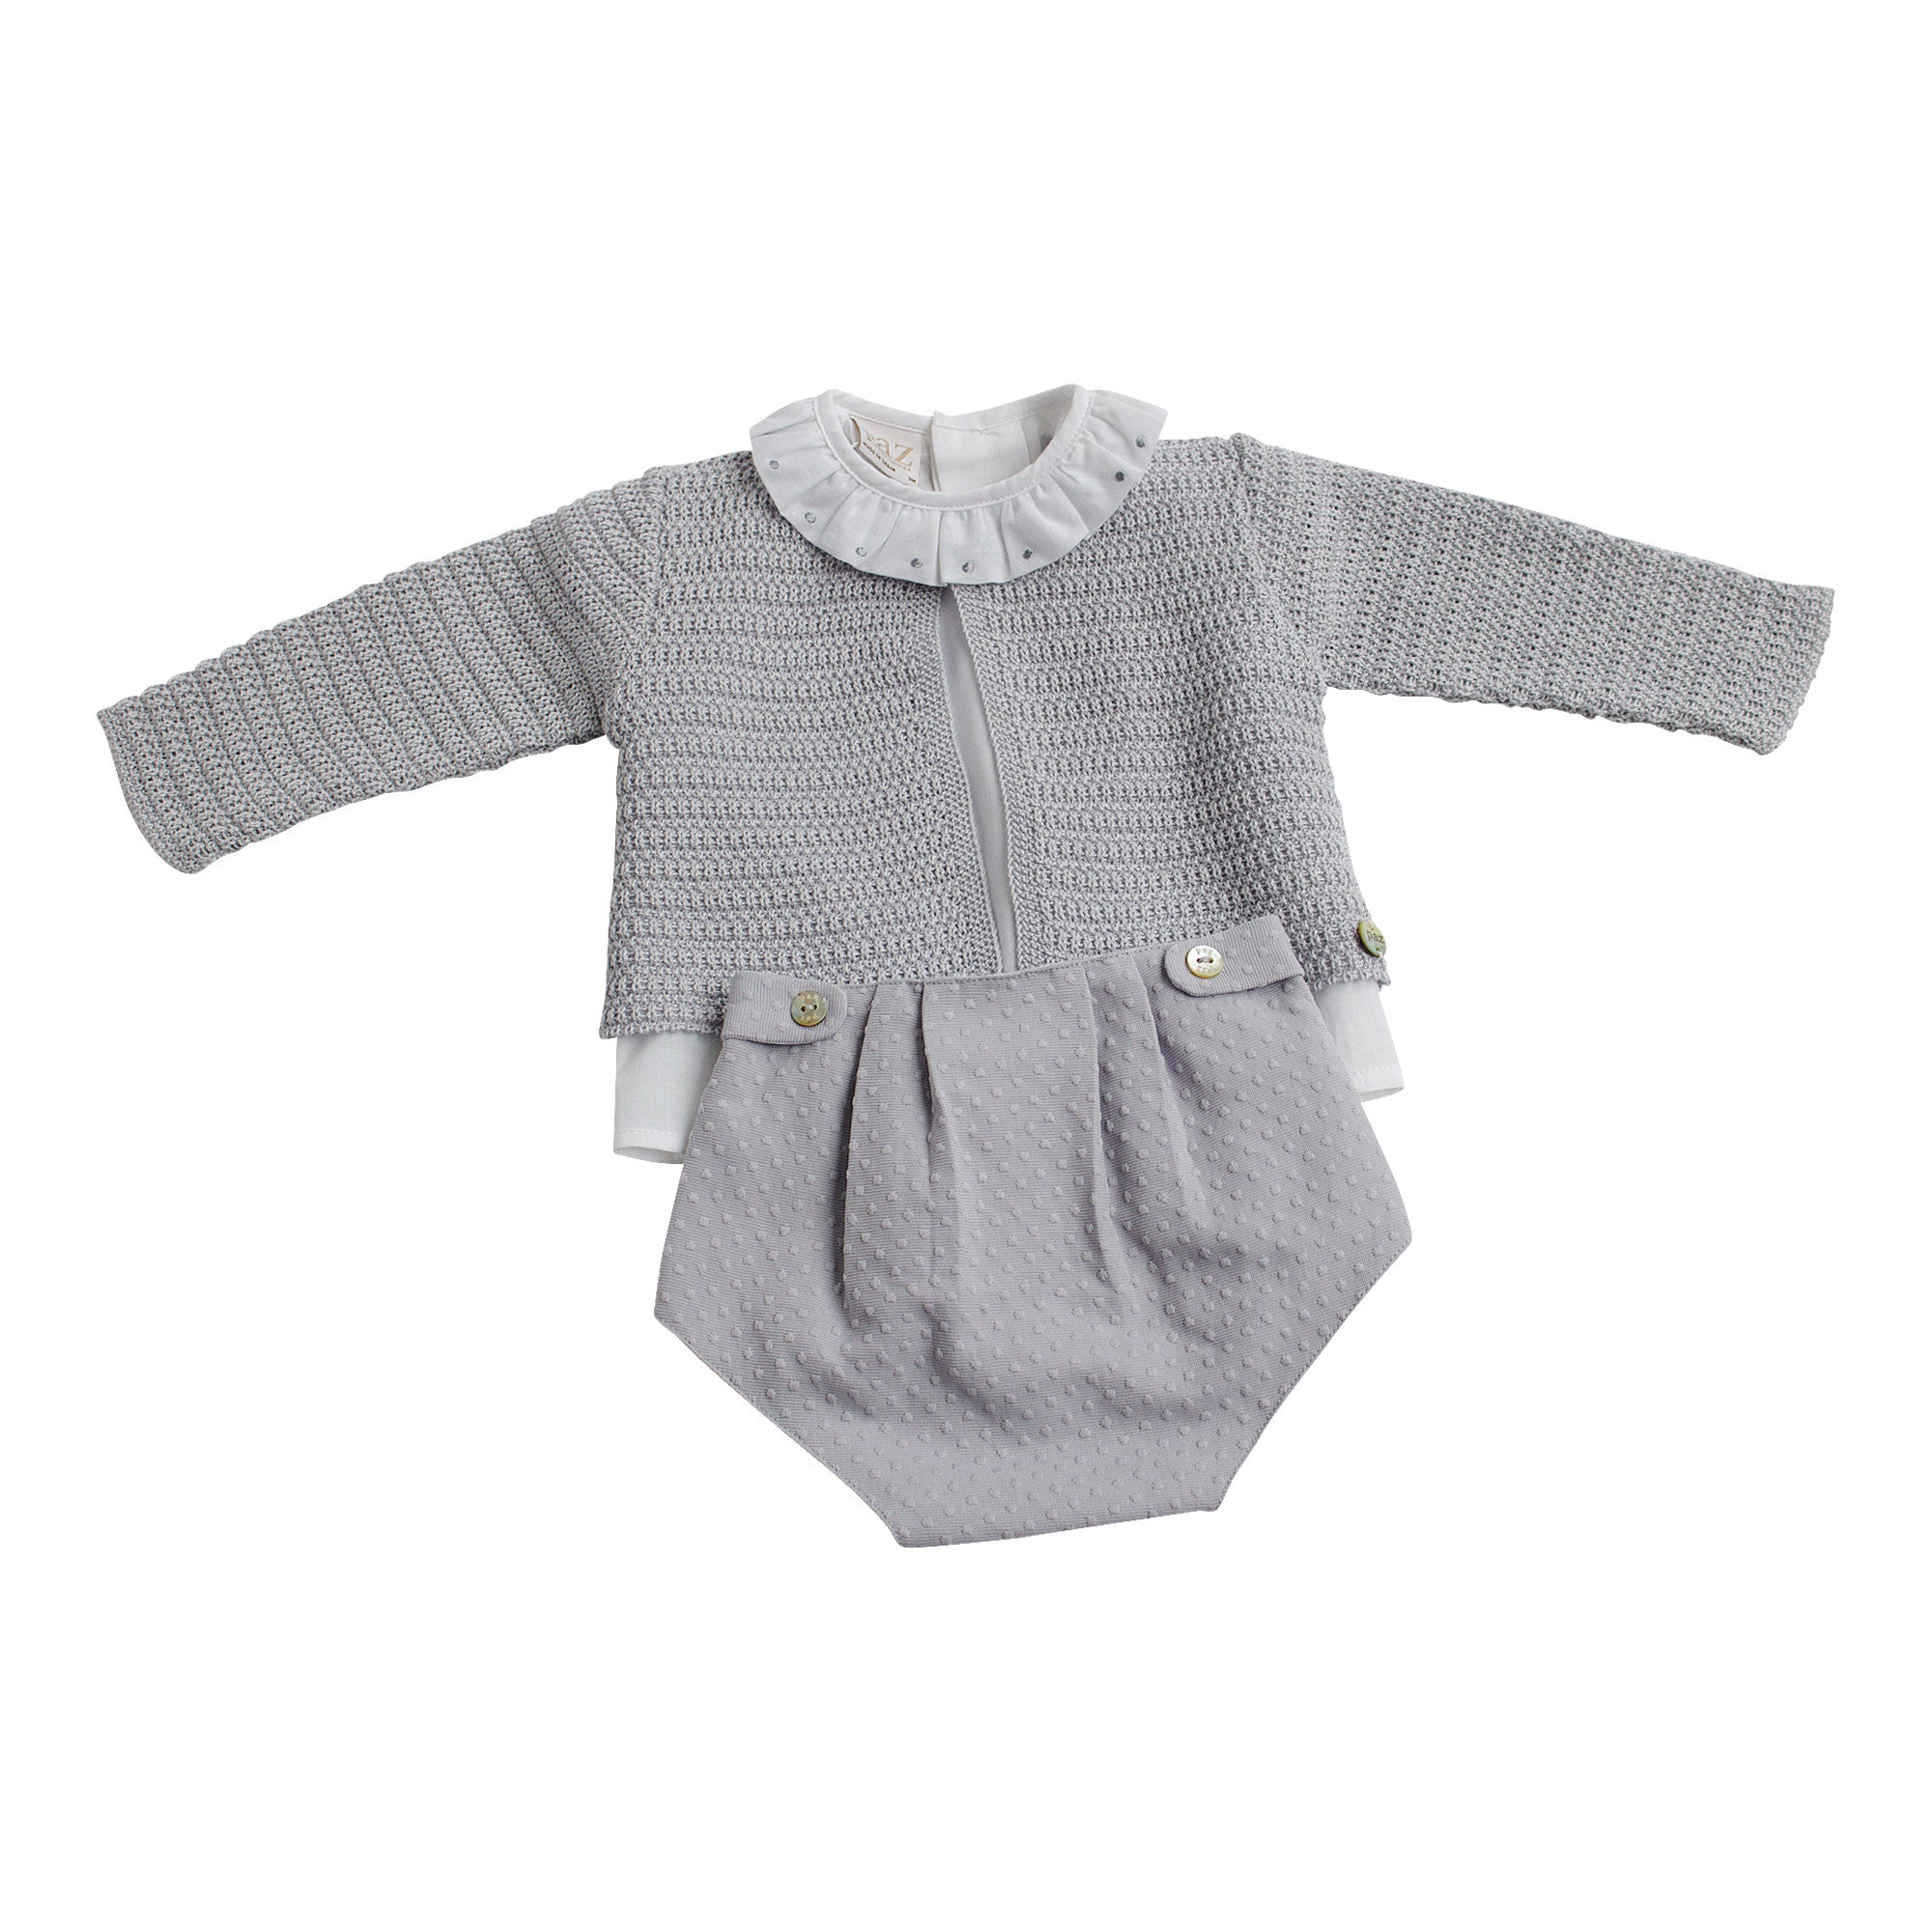 Luxury Baby Boutique Spanish Baby Clothes – Stork and Swan Boutique